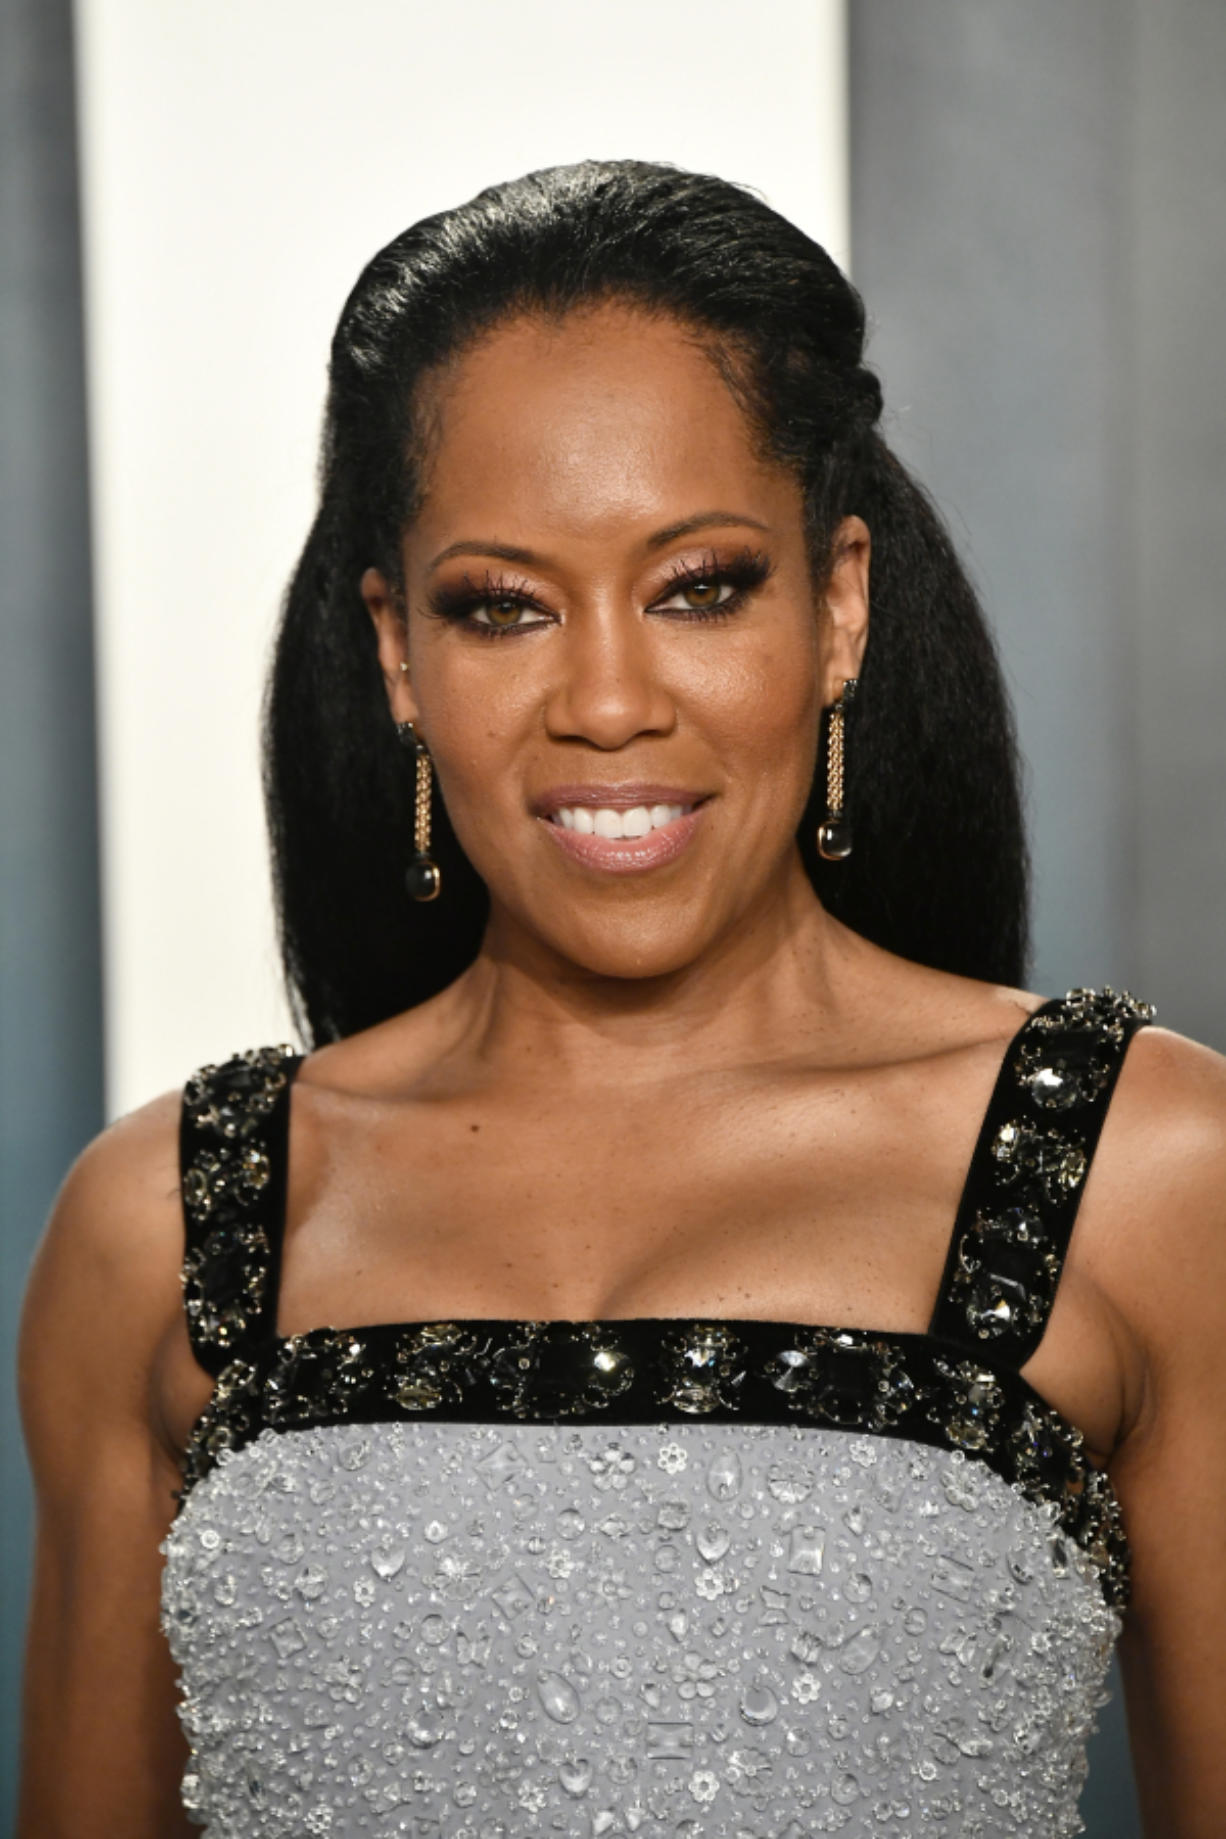 Regina King attends the 2020 Vanity Fair Oscar Party hosted by Radhika Jones at Wallis Annenberg Center for the Performing Arts on Feb. 9, 2020 in Beverly Hills, California.